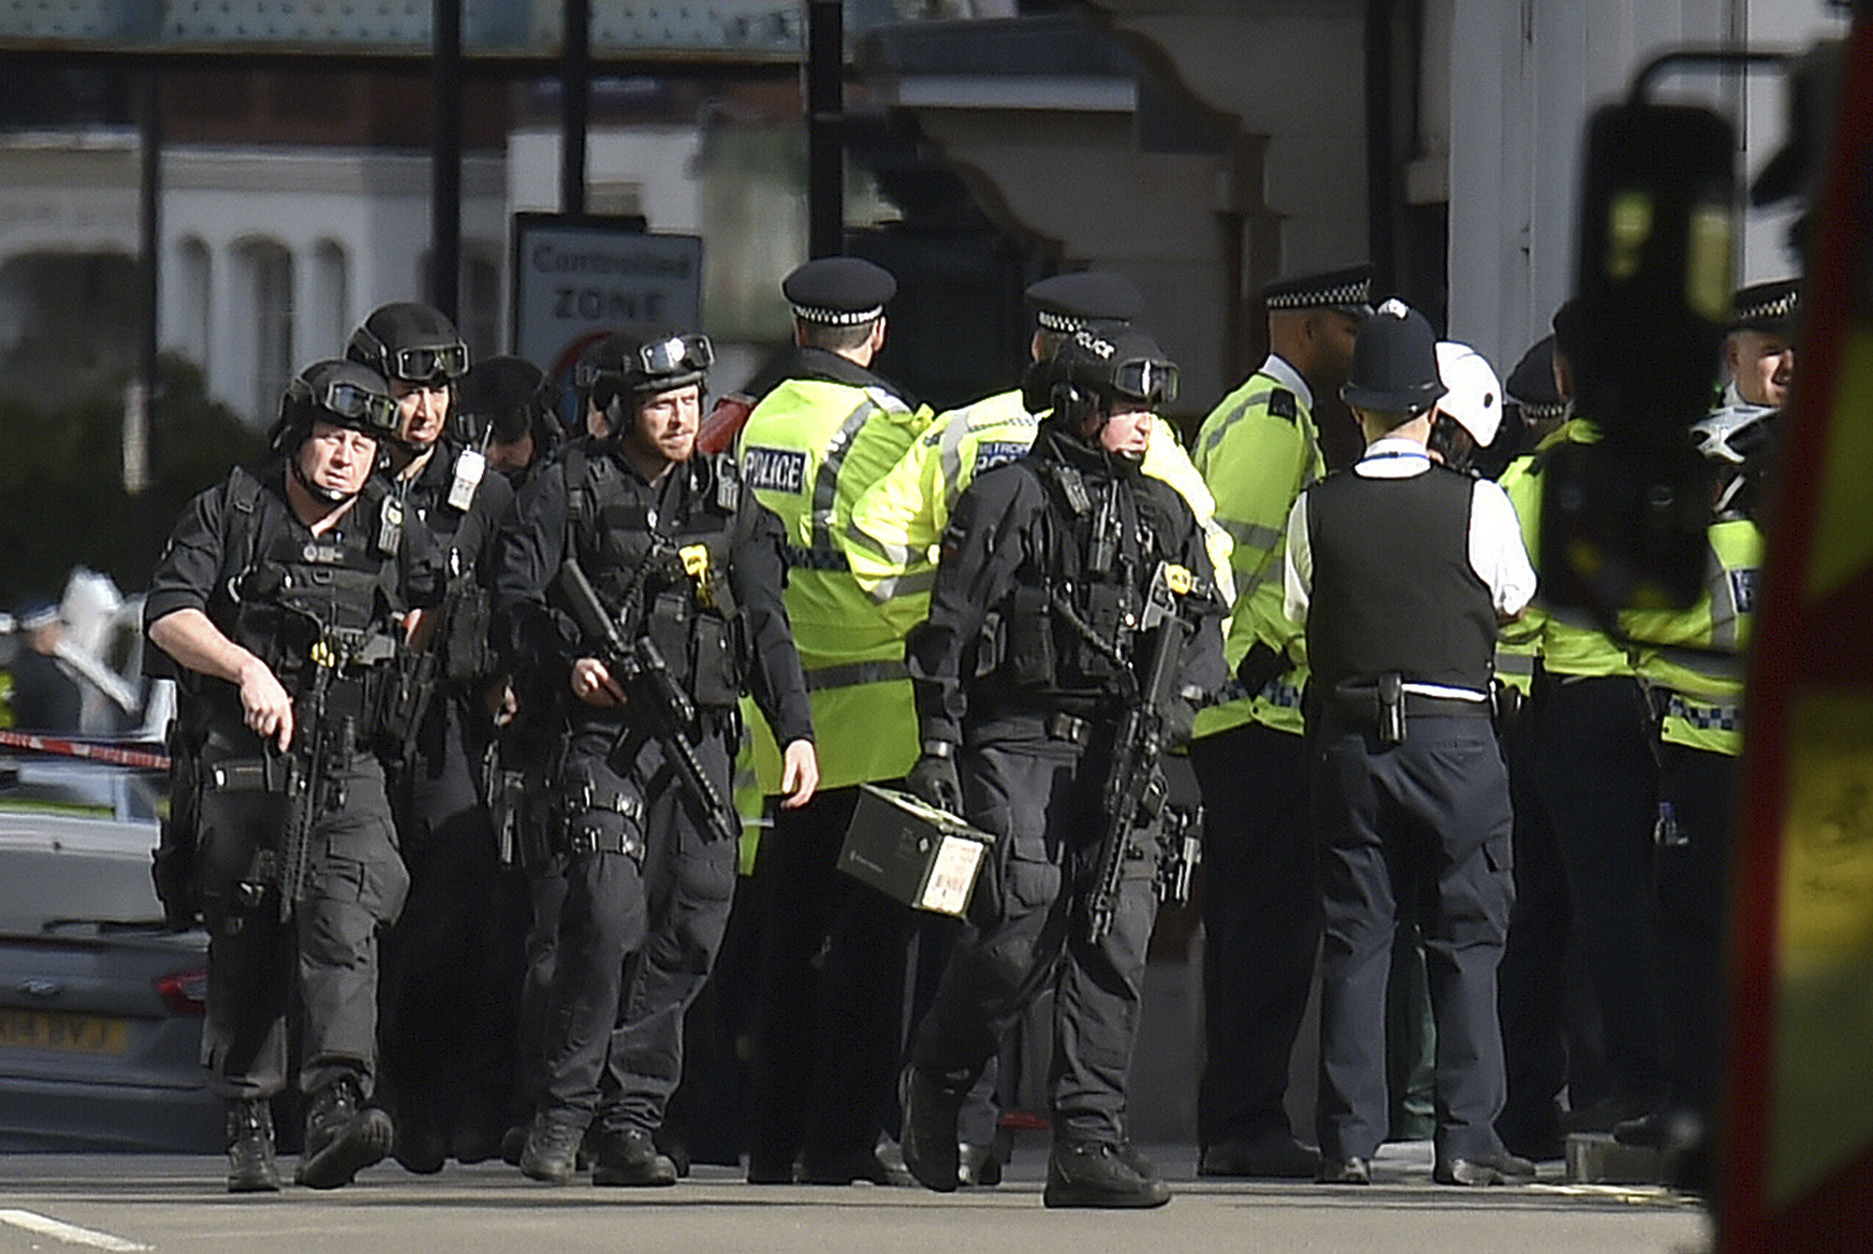 <div class='meta'><div class='origin-logo' data-origin='none'></div><span class='caption-text' data-credit='Dominic Lipinski/PA via AP'>Armed police close to Parsons Green station in west London after an explosion on a packed London Underground train, Friday, Sept. 15, 2017.</span></div>